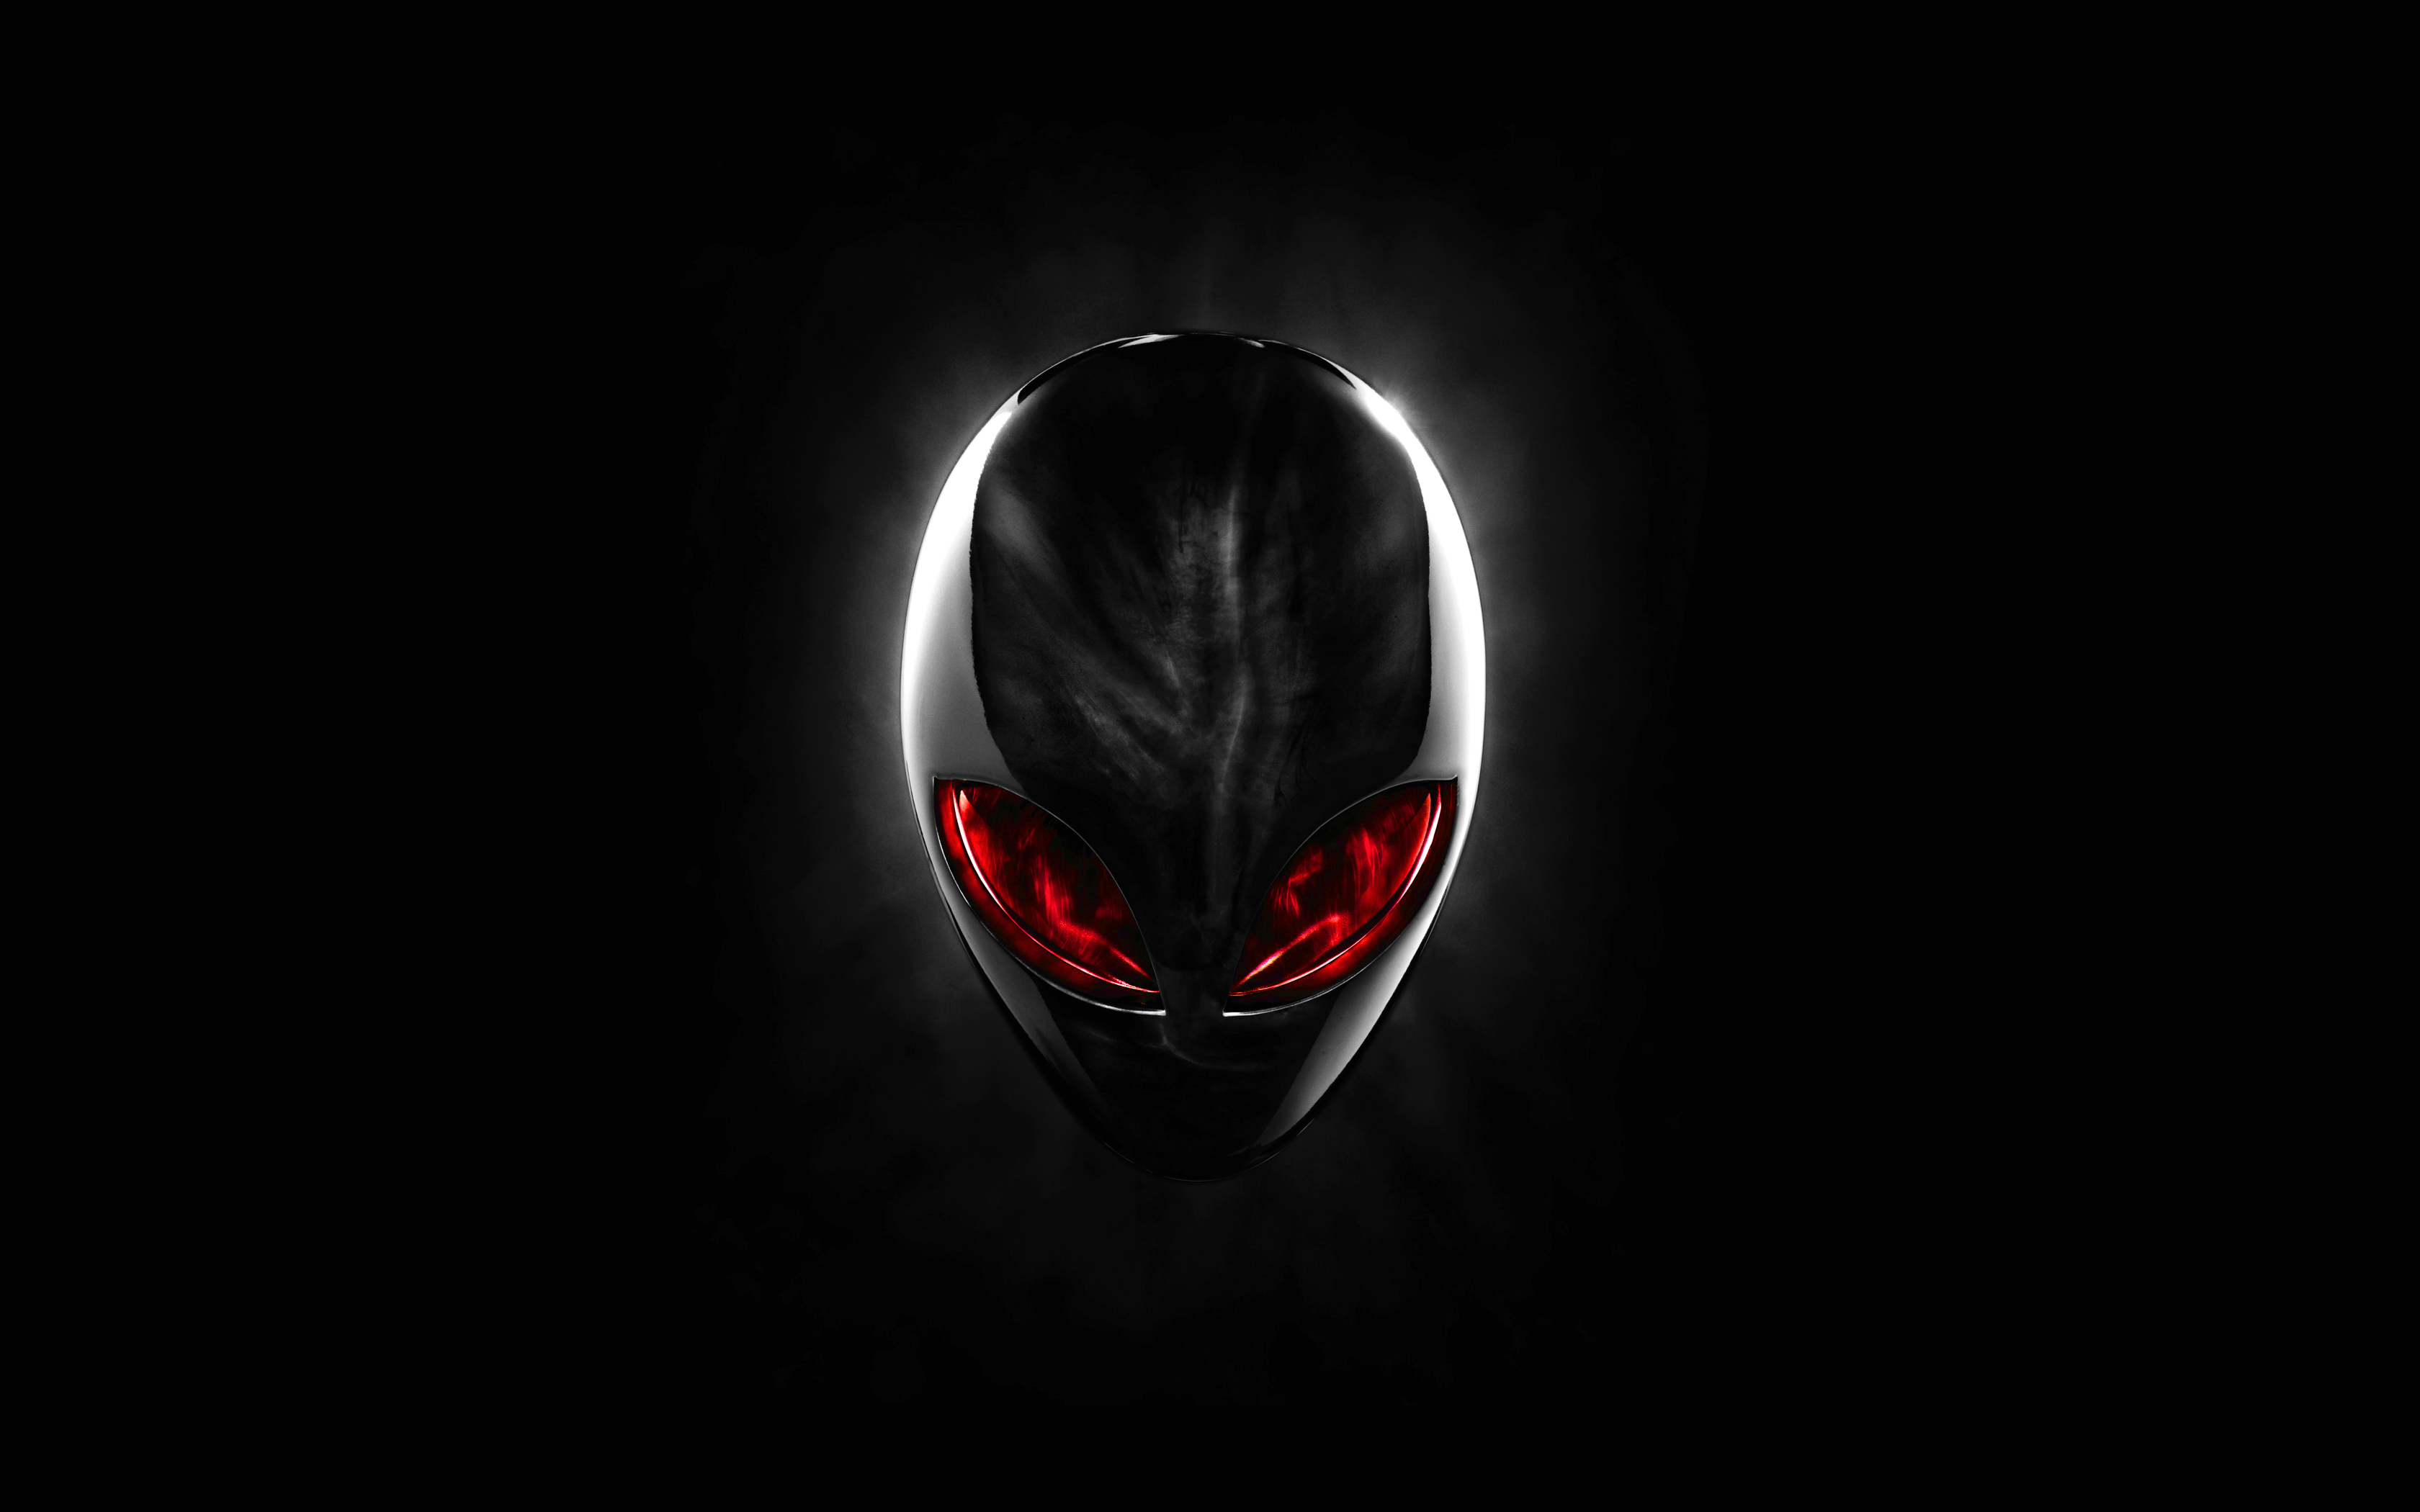 3360x2100 125 Alienware HD Wallpapers   Background Images - Wallpaper Abyss